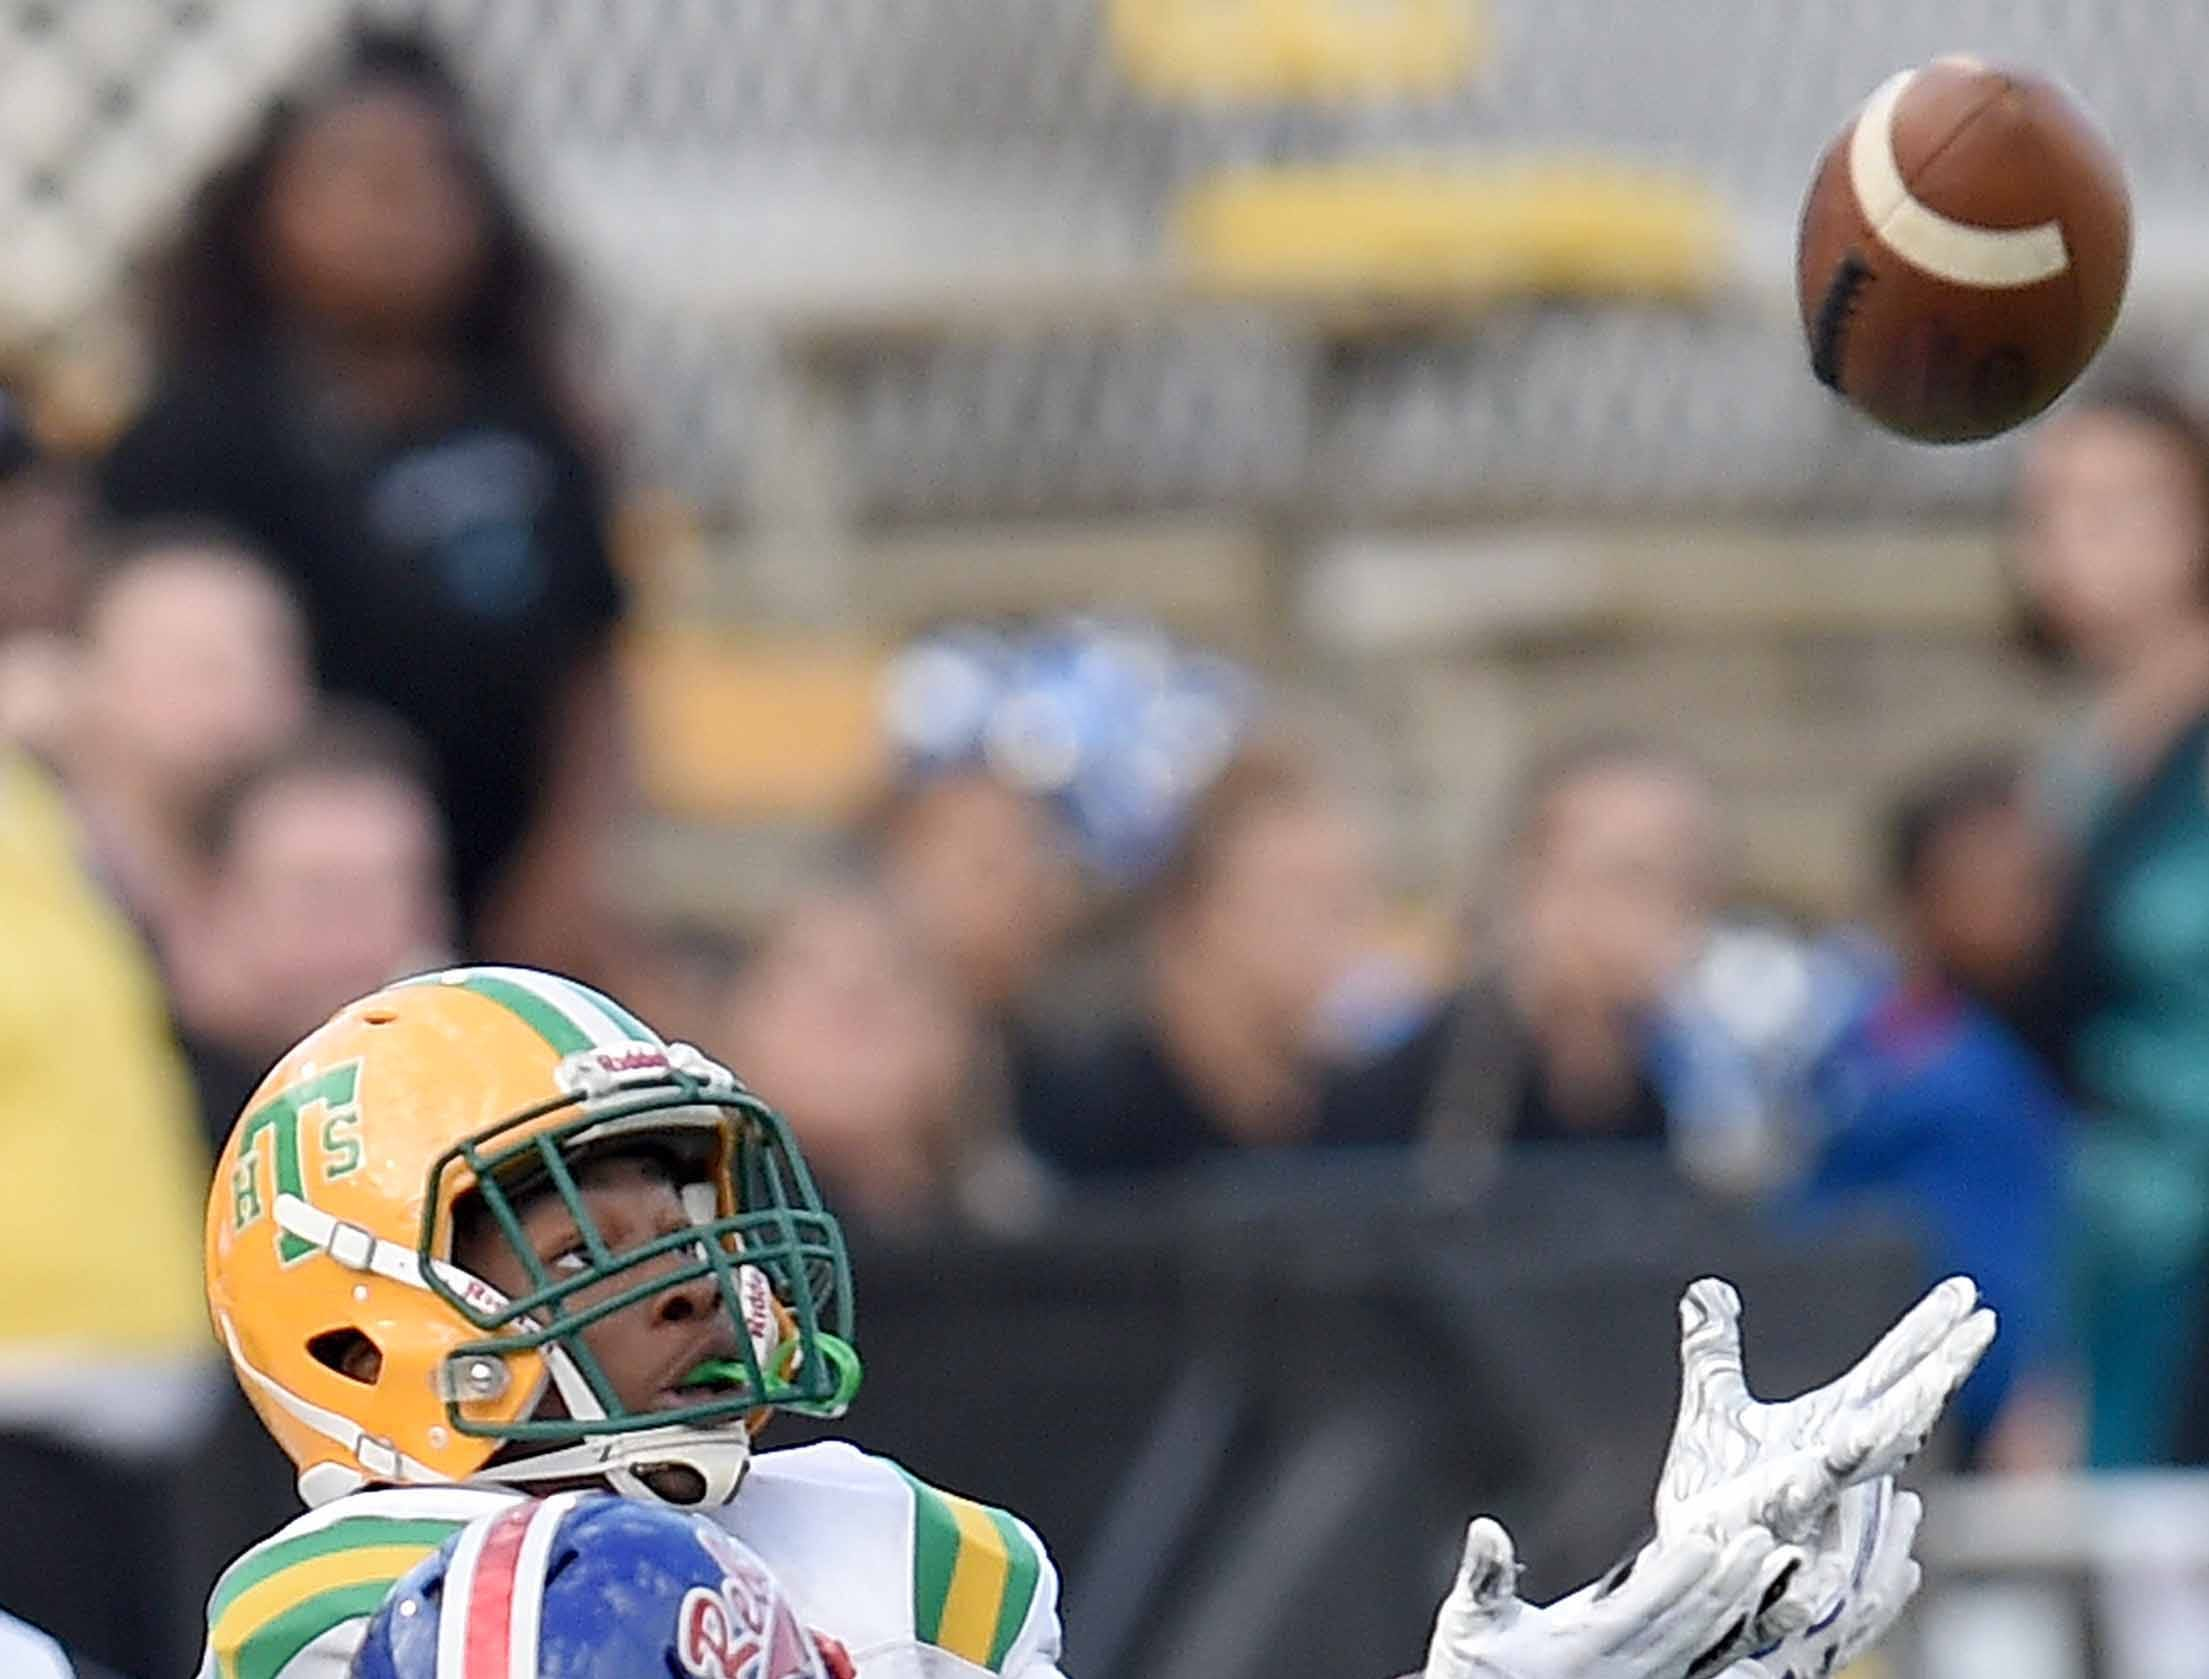 Taylorsville's Jalon Clark tries to catch a long pass over Scott Central's Dillon Shaw (3) on Saturday, December 1, 2018, in the MHSAA BlueCross BlueShield Gridiron Classic High School Football Championships in M.M. Roberts Stadium on the University of Southern Mississippi campus in Hattiesburg, Miss.